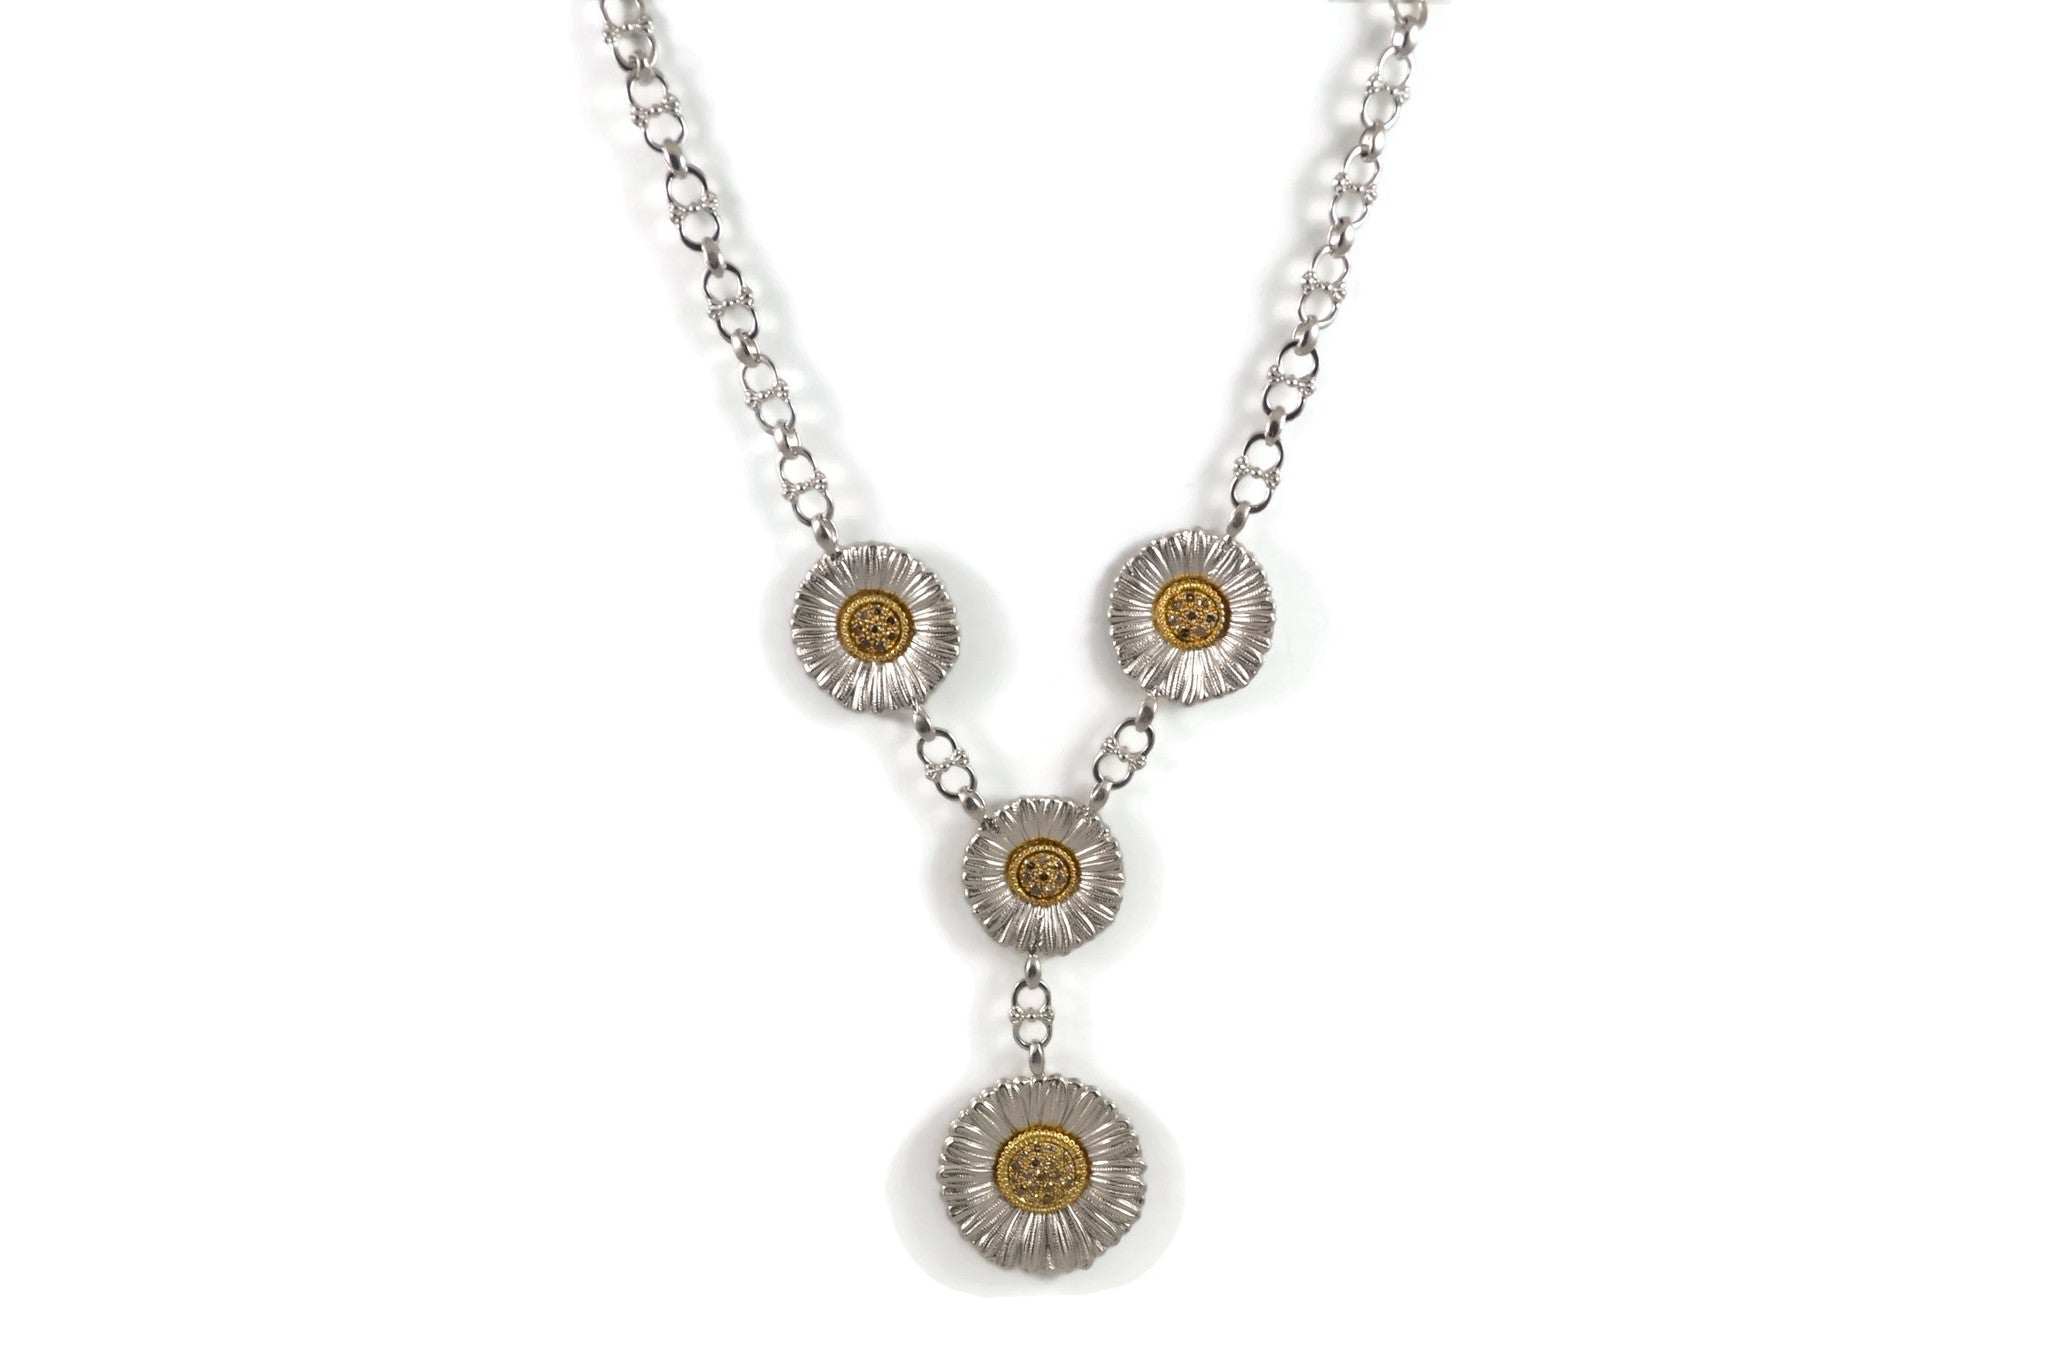 BUCCELLATI-BLOSSOMS-DAISY-NECKLACE-BROWN-DIAMONDS-STERLING-SILVER